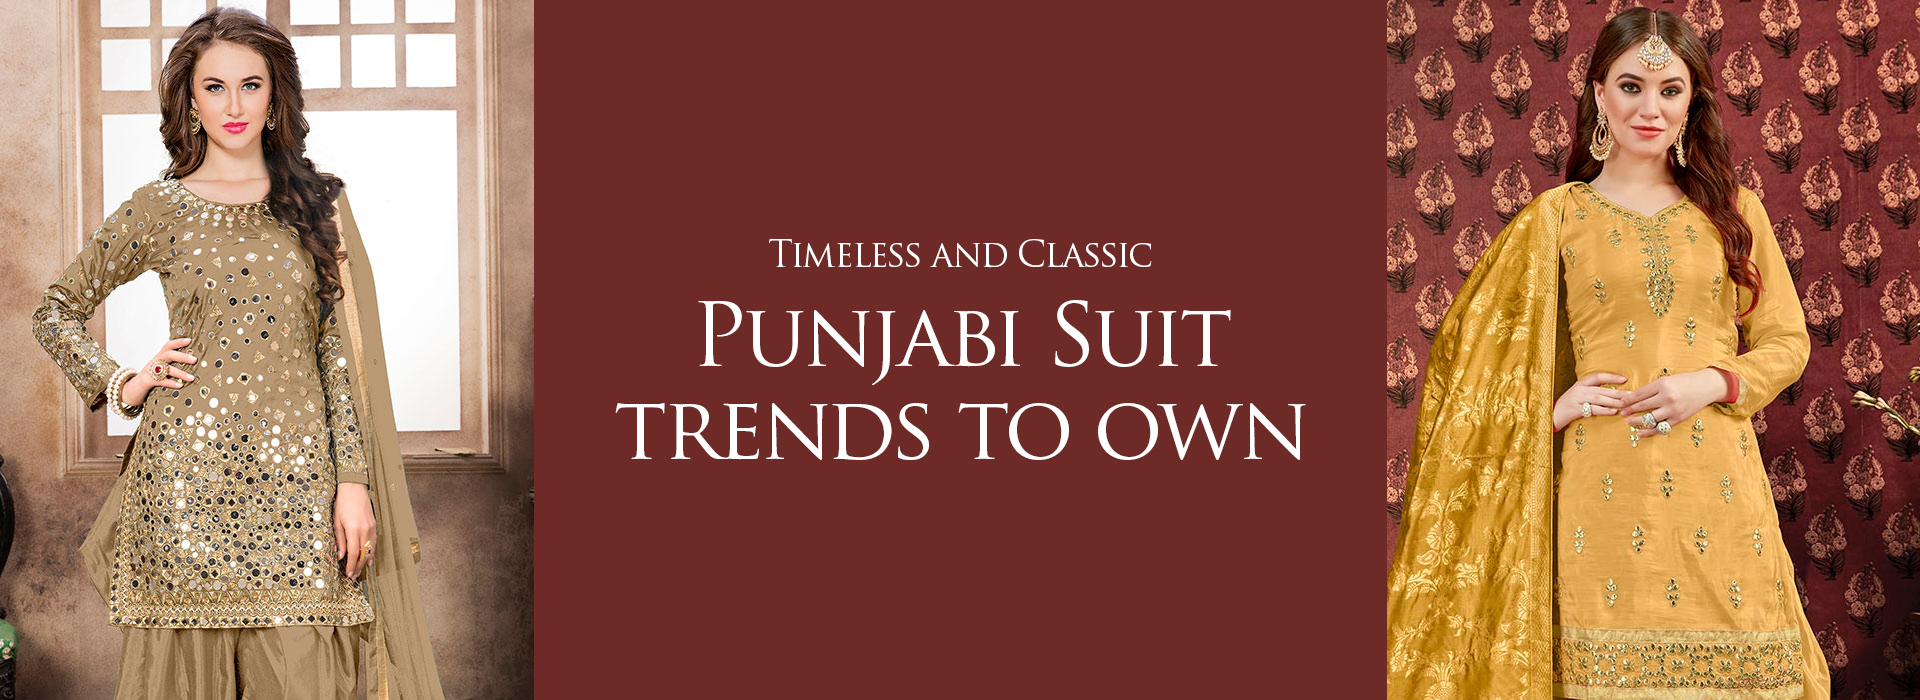 Timeless and Classic Punjabi Suit Trends To Own